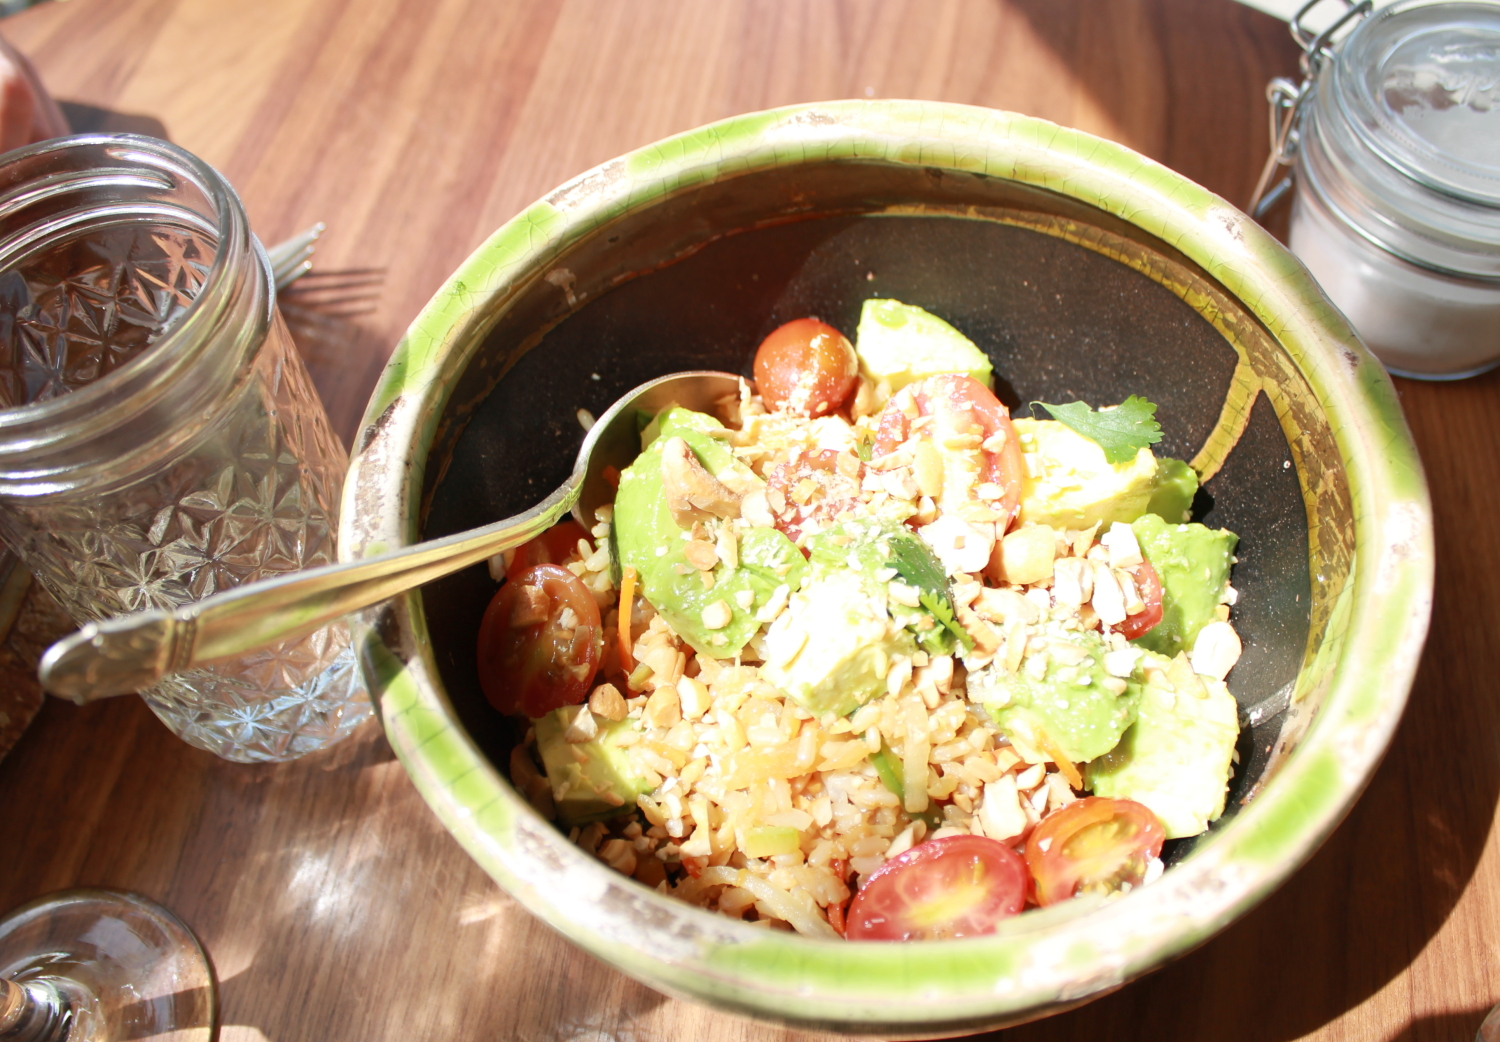 Rice Vegginb Bowl with Avocado and Tomatoes